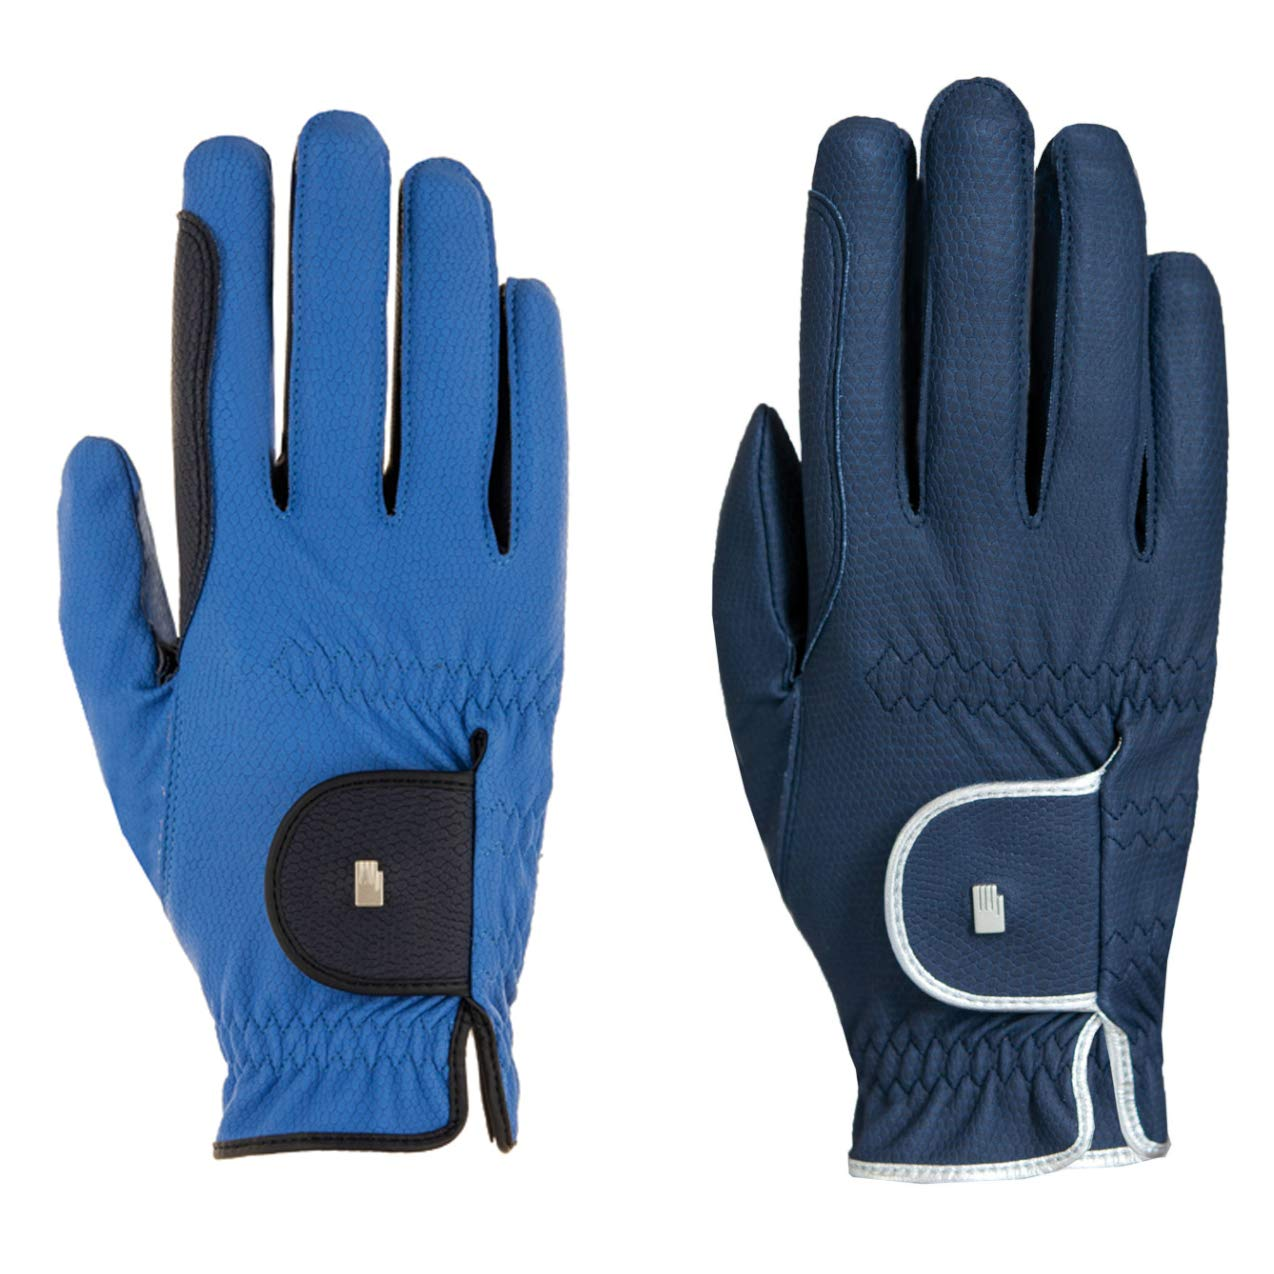 Roeckl – レディースコントラストRiding Gloves Lona 7.5 navy-silver B07B3YPWQJ